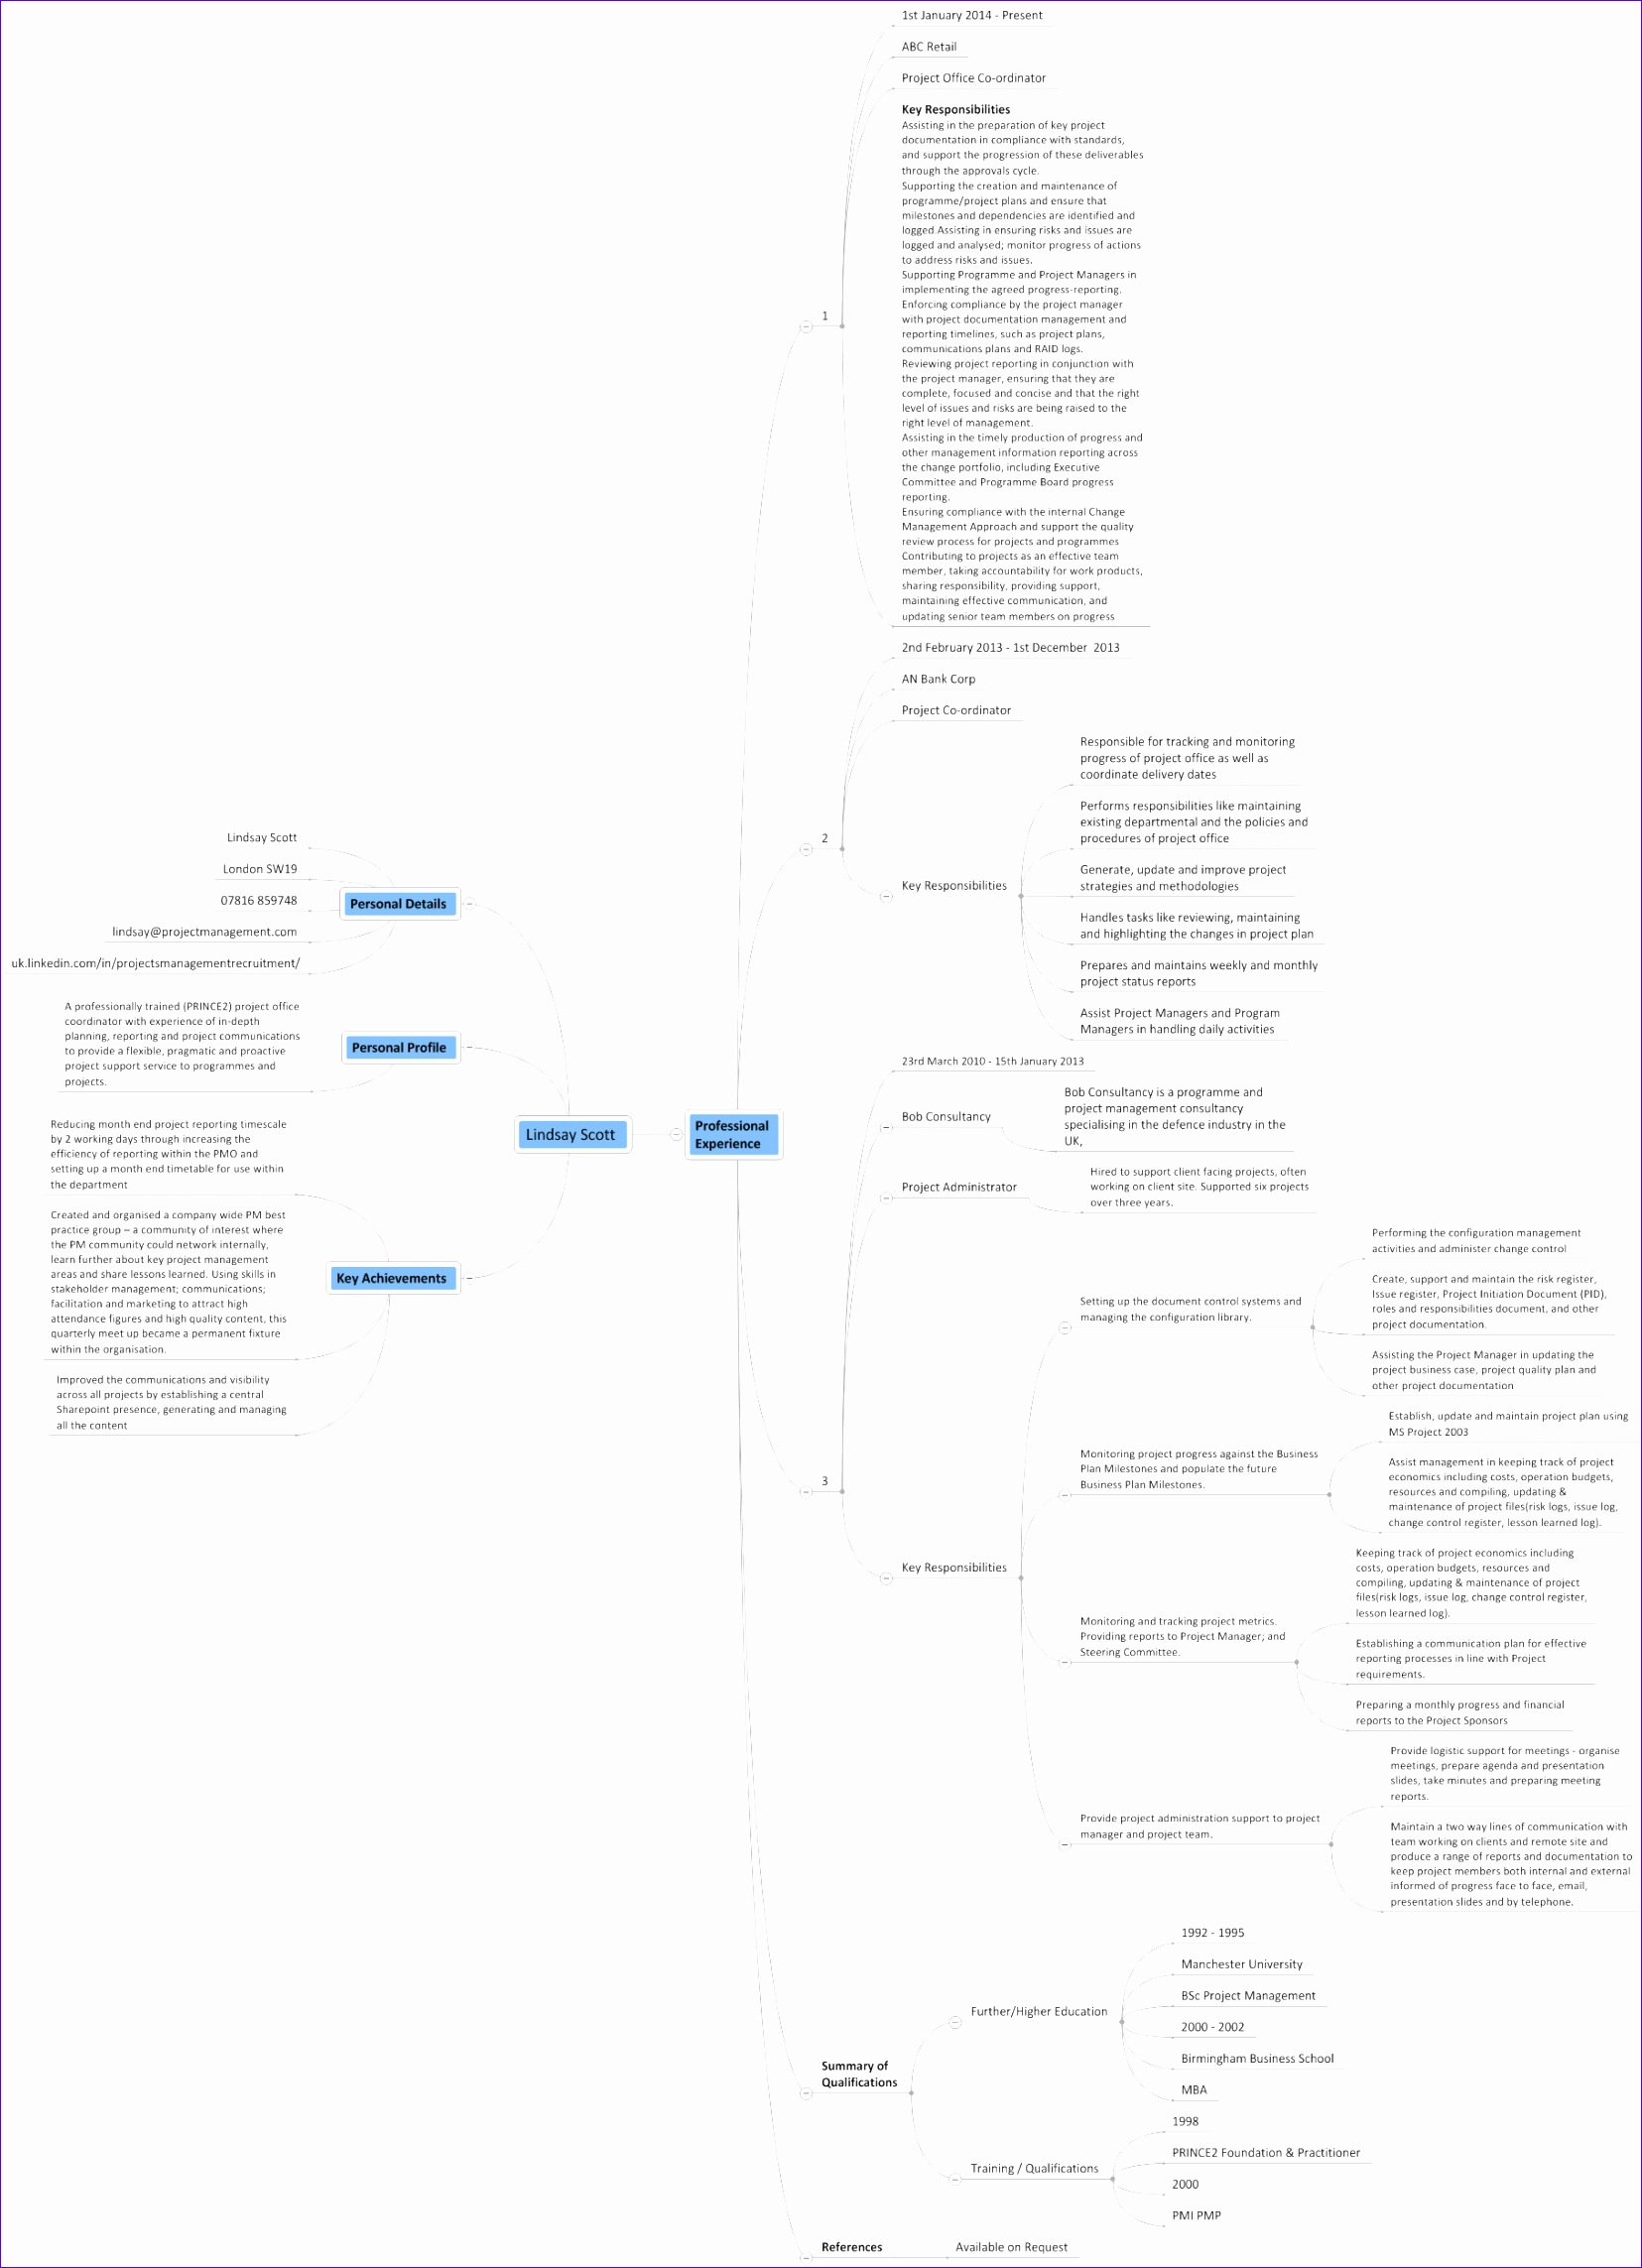 Excel Mind Map Template Hiui4 Inspirational Using A Mind Map to Create A Pm Cv Arraspeople